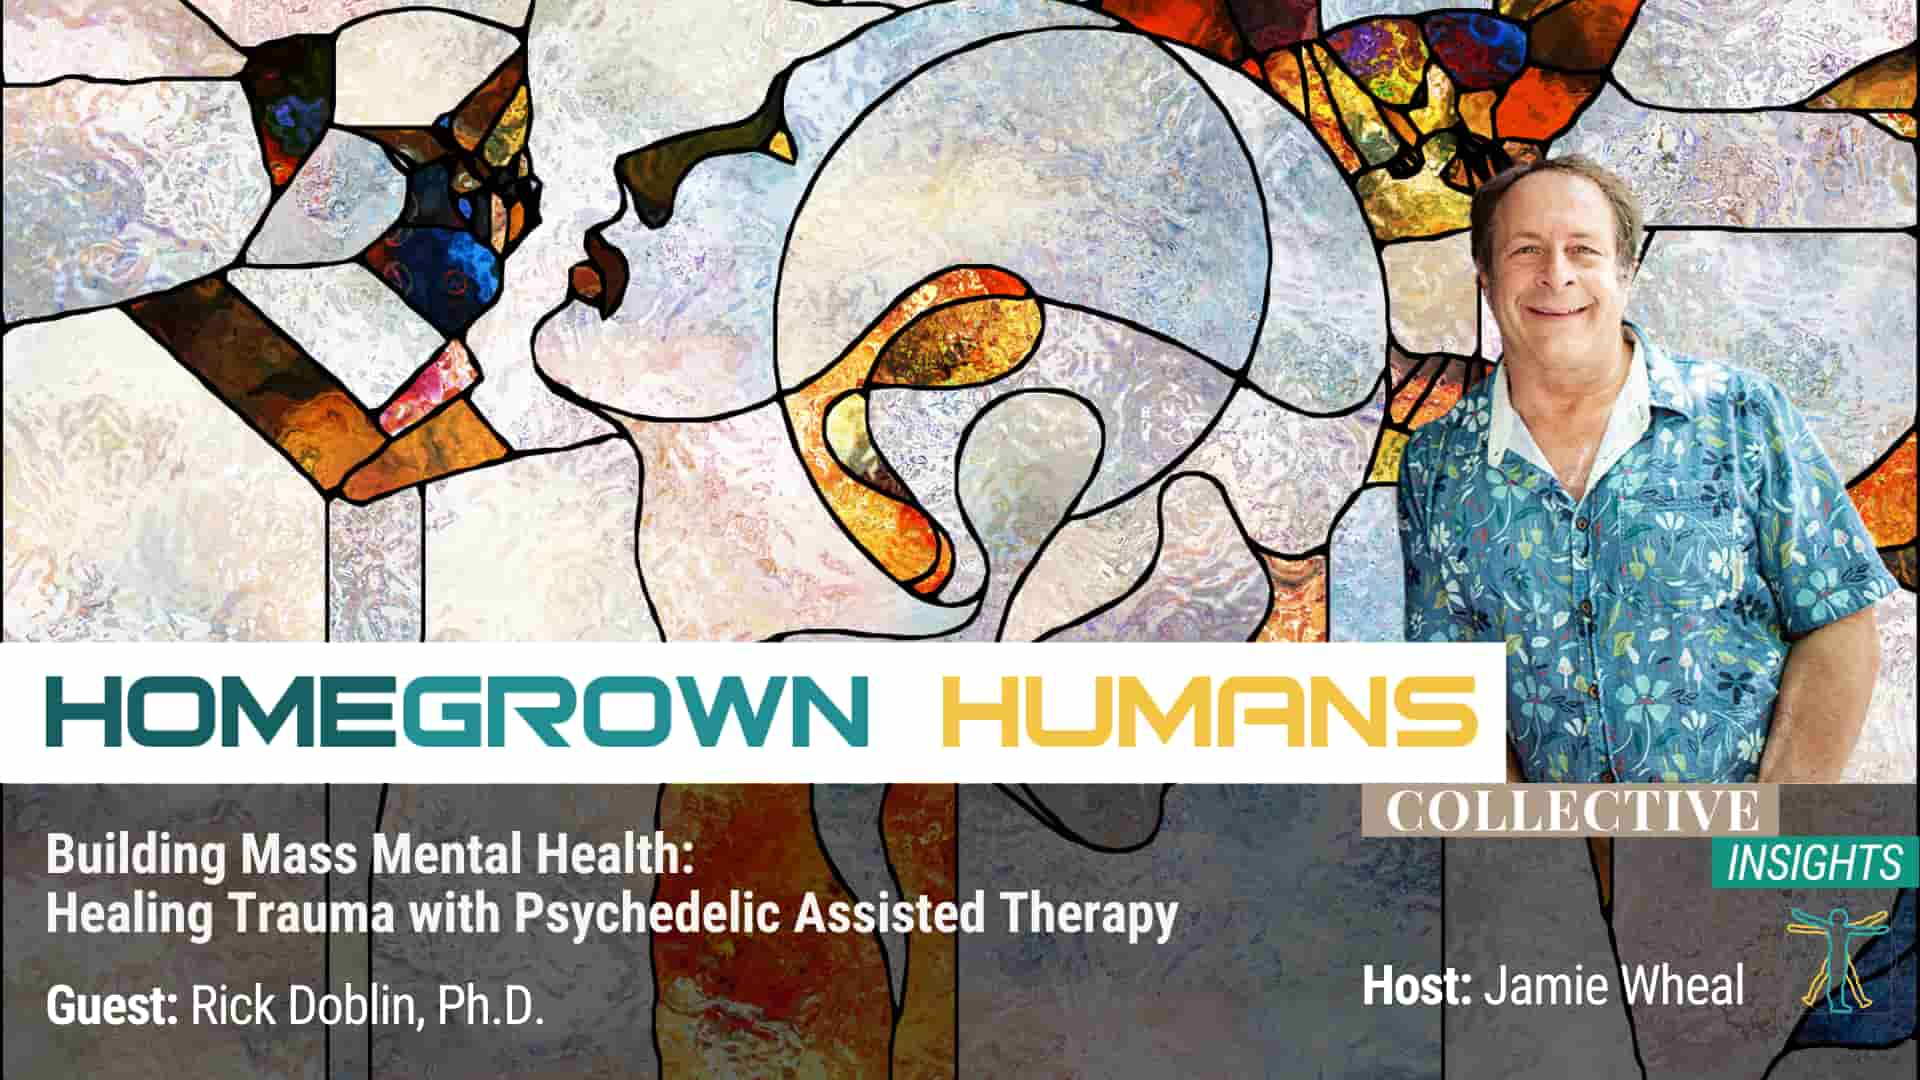 HomeGrown Humans - Rick Doblin, Ph.D. - MAPS - Hosted by Jamie Wheal